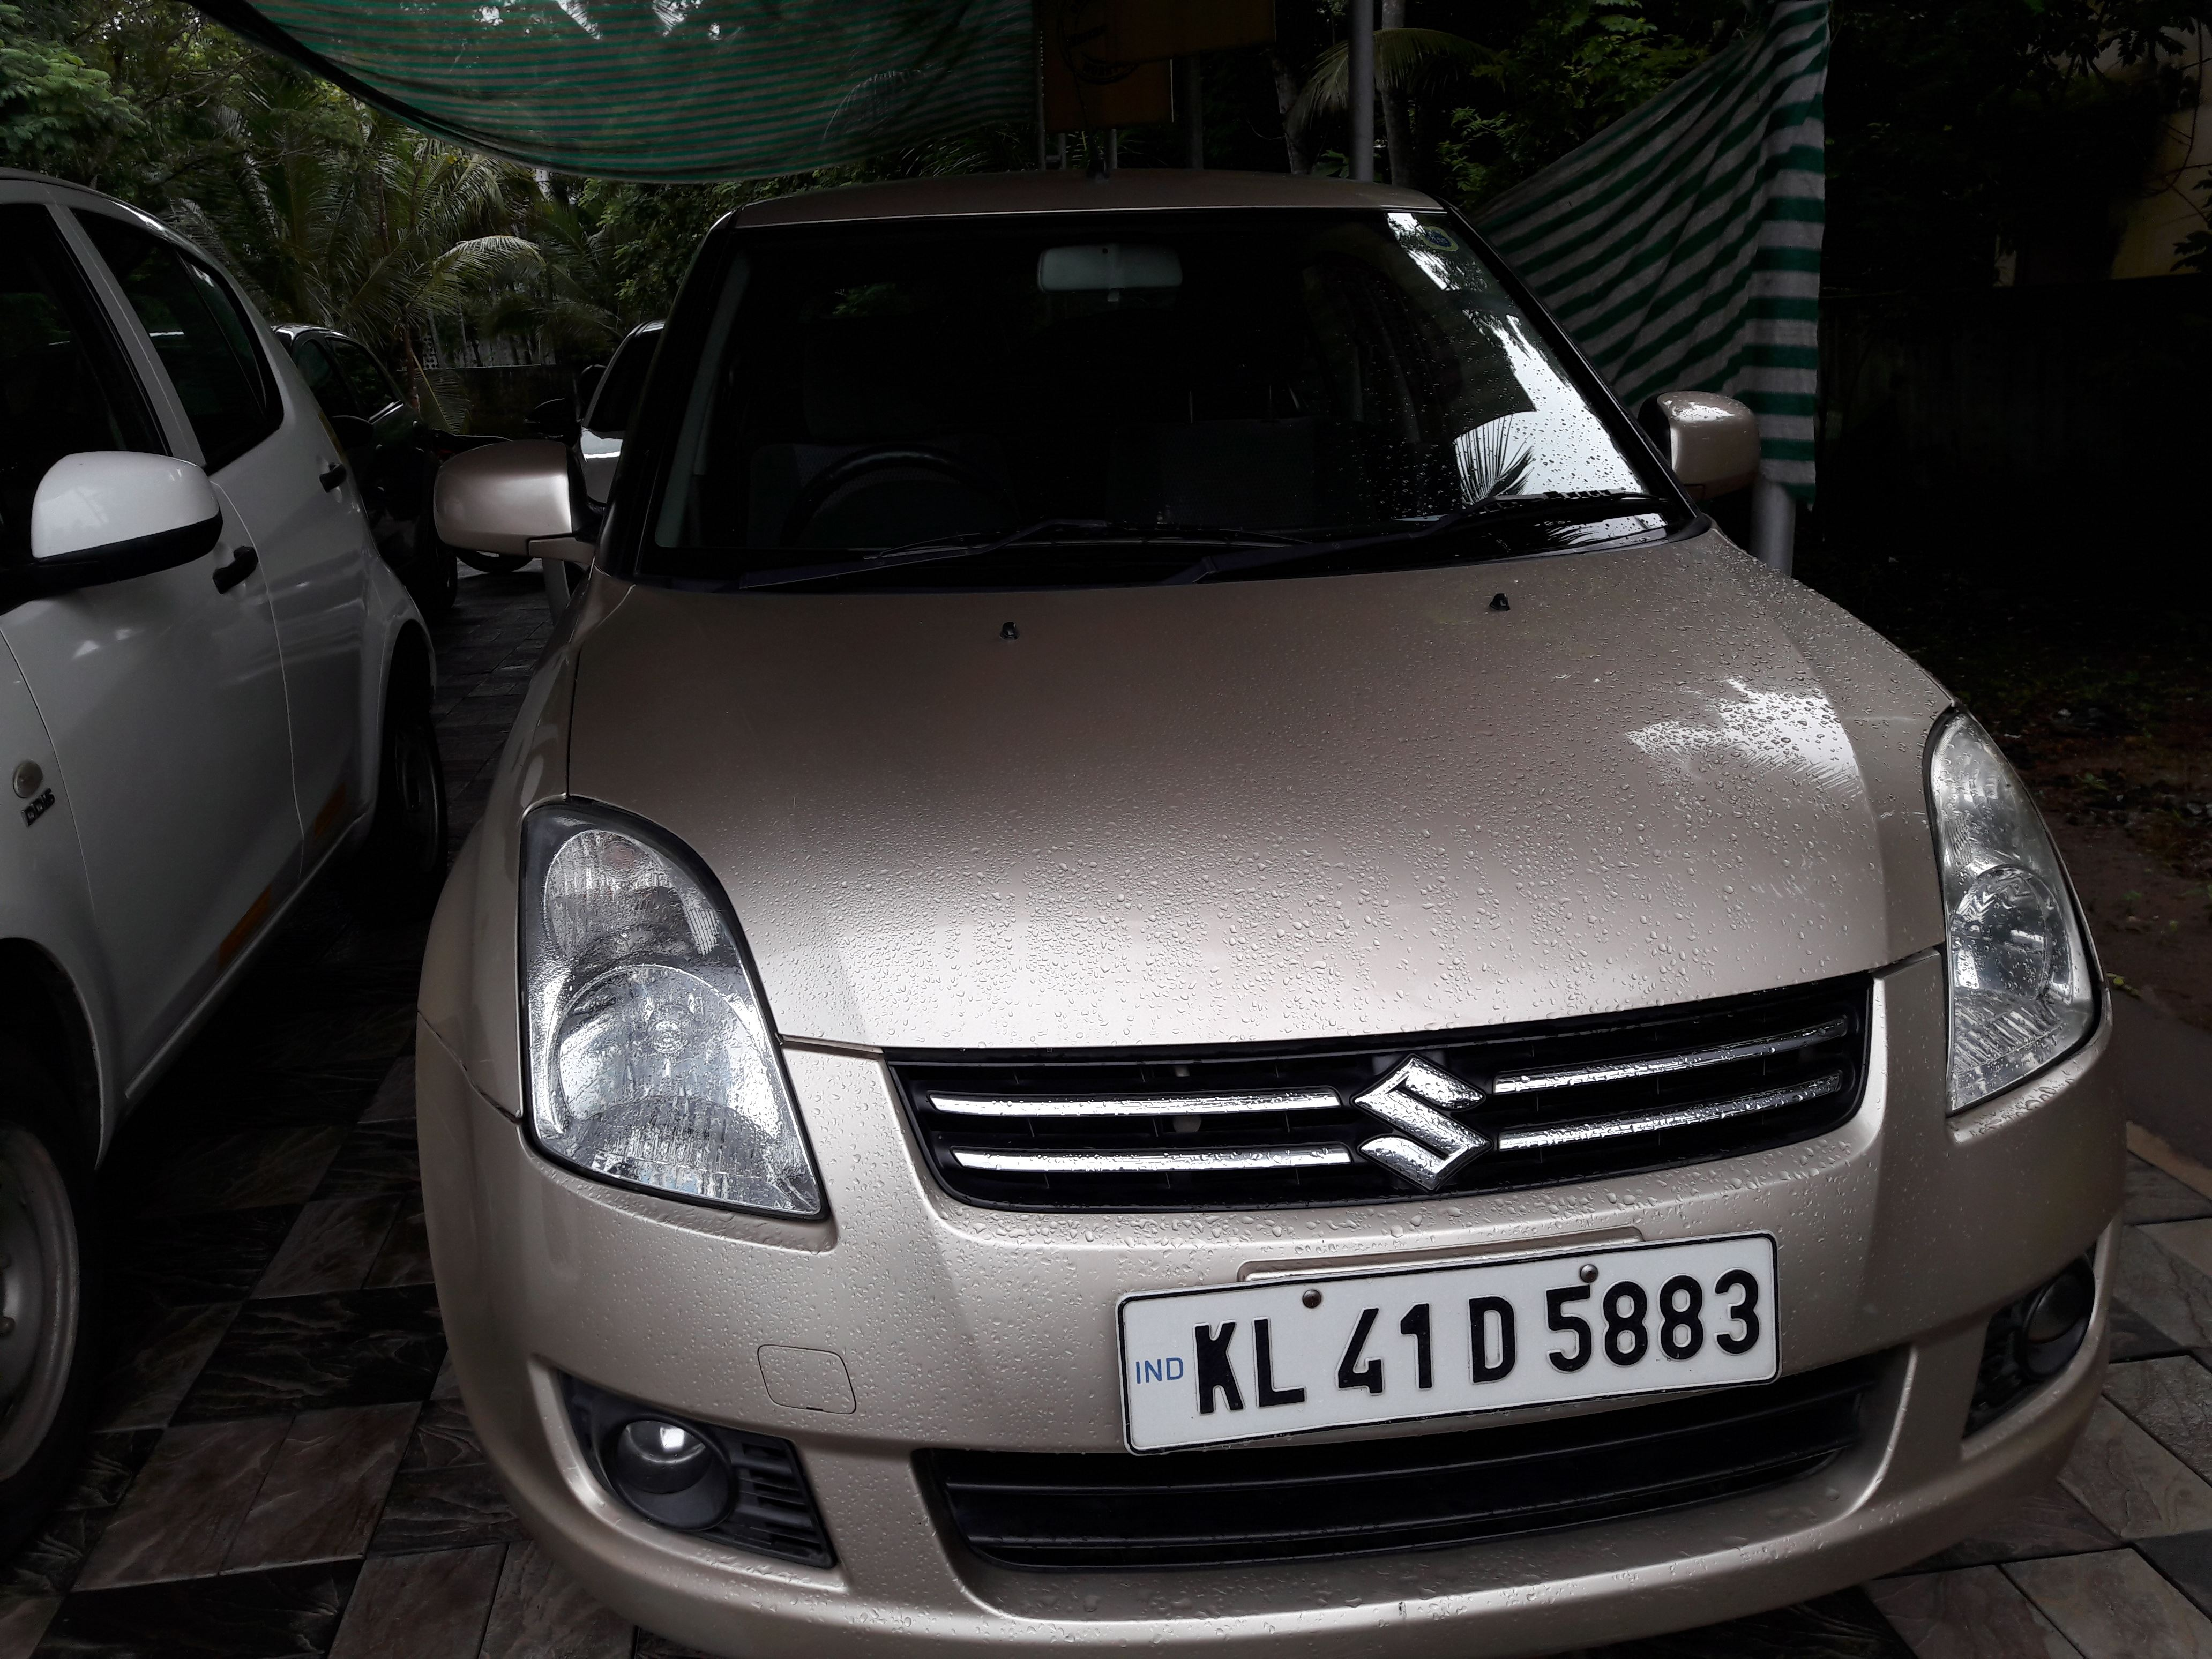 2010 Used Maruti Suzuki Swift Dzire VXI 1.2 BS IV